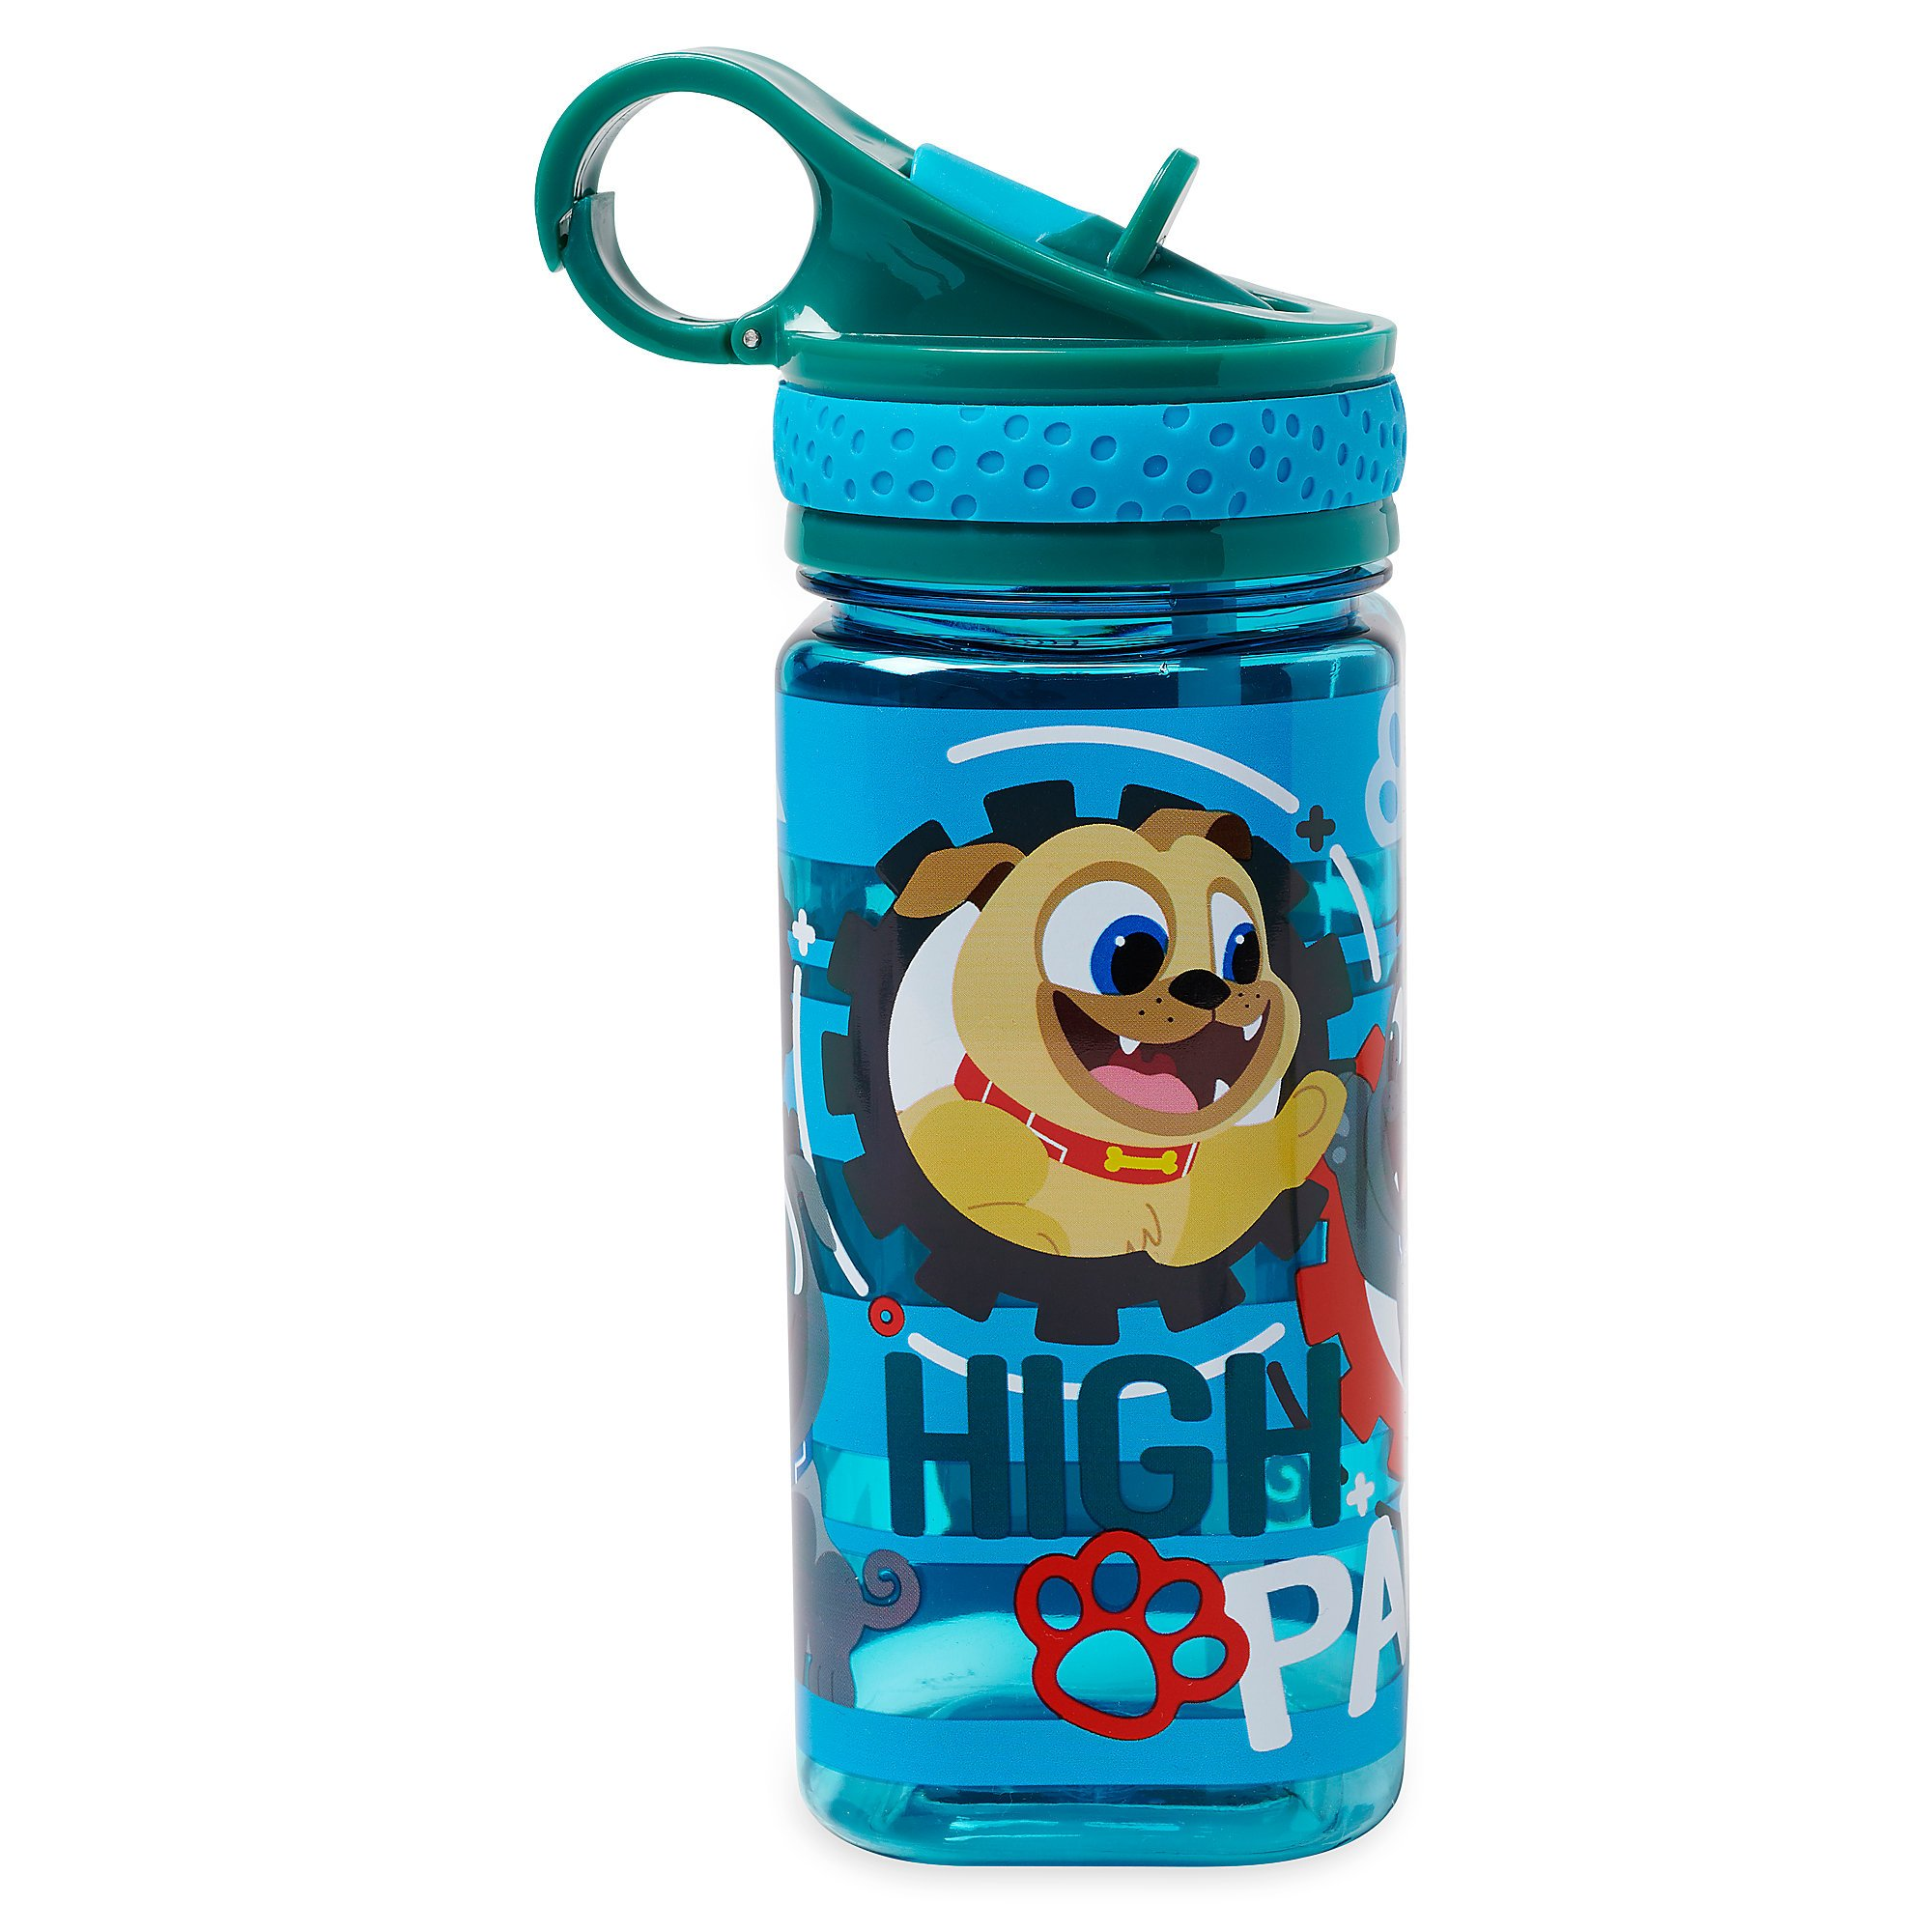 Disney Puppy Dog Pals Water Bottle with Built-In Straw by Disney